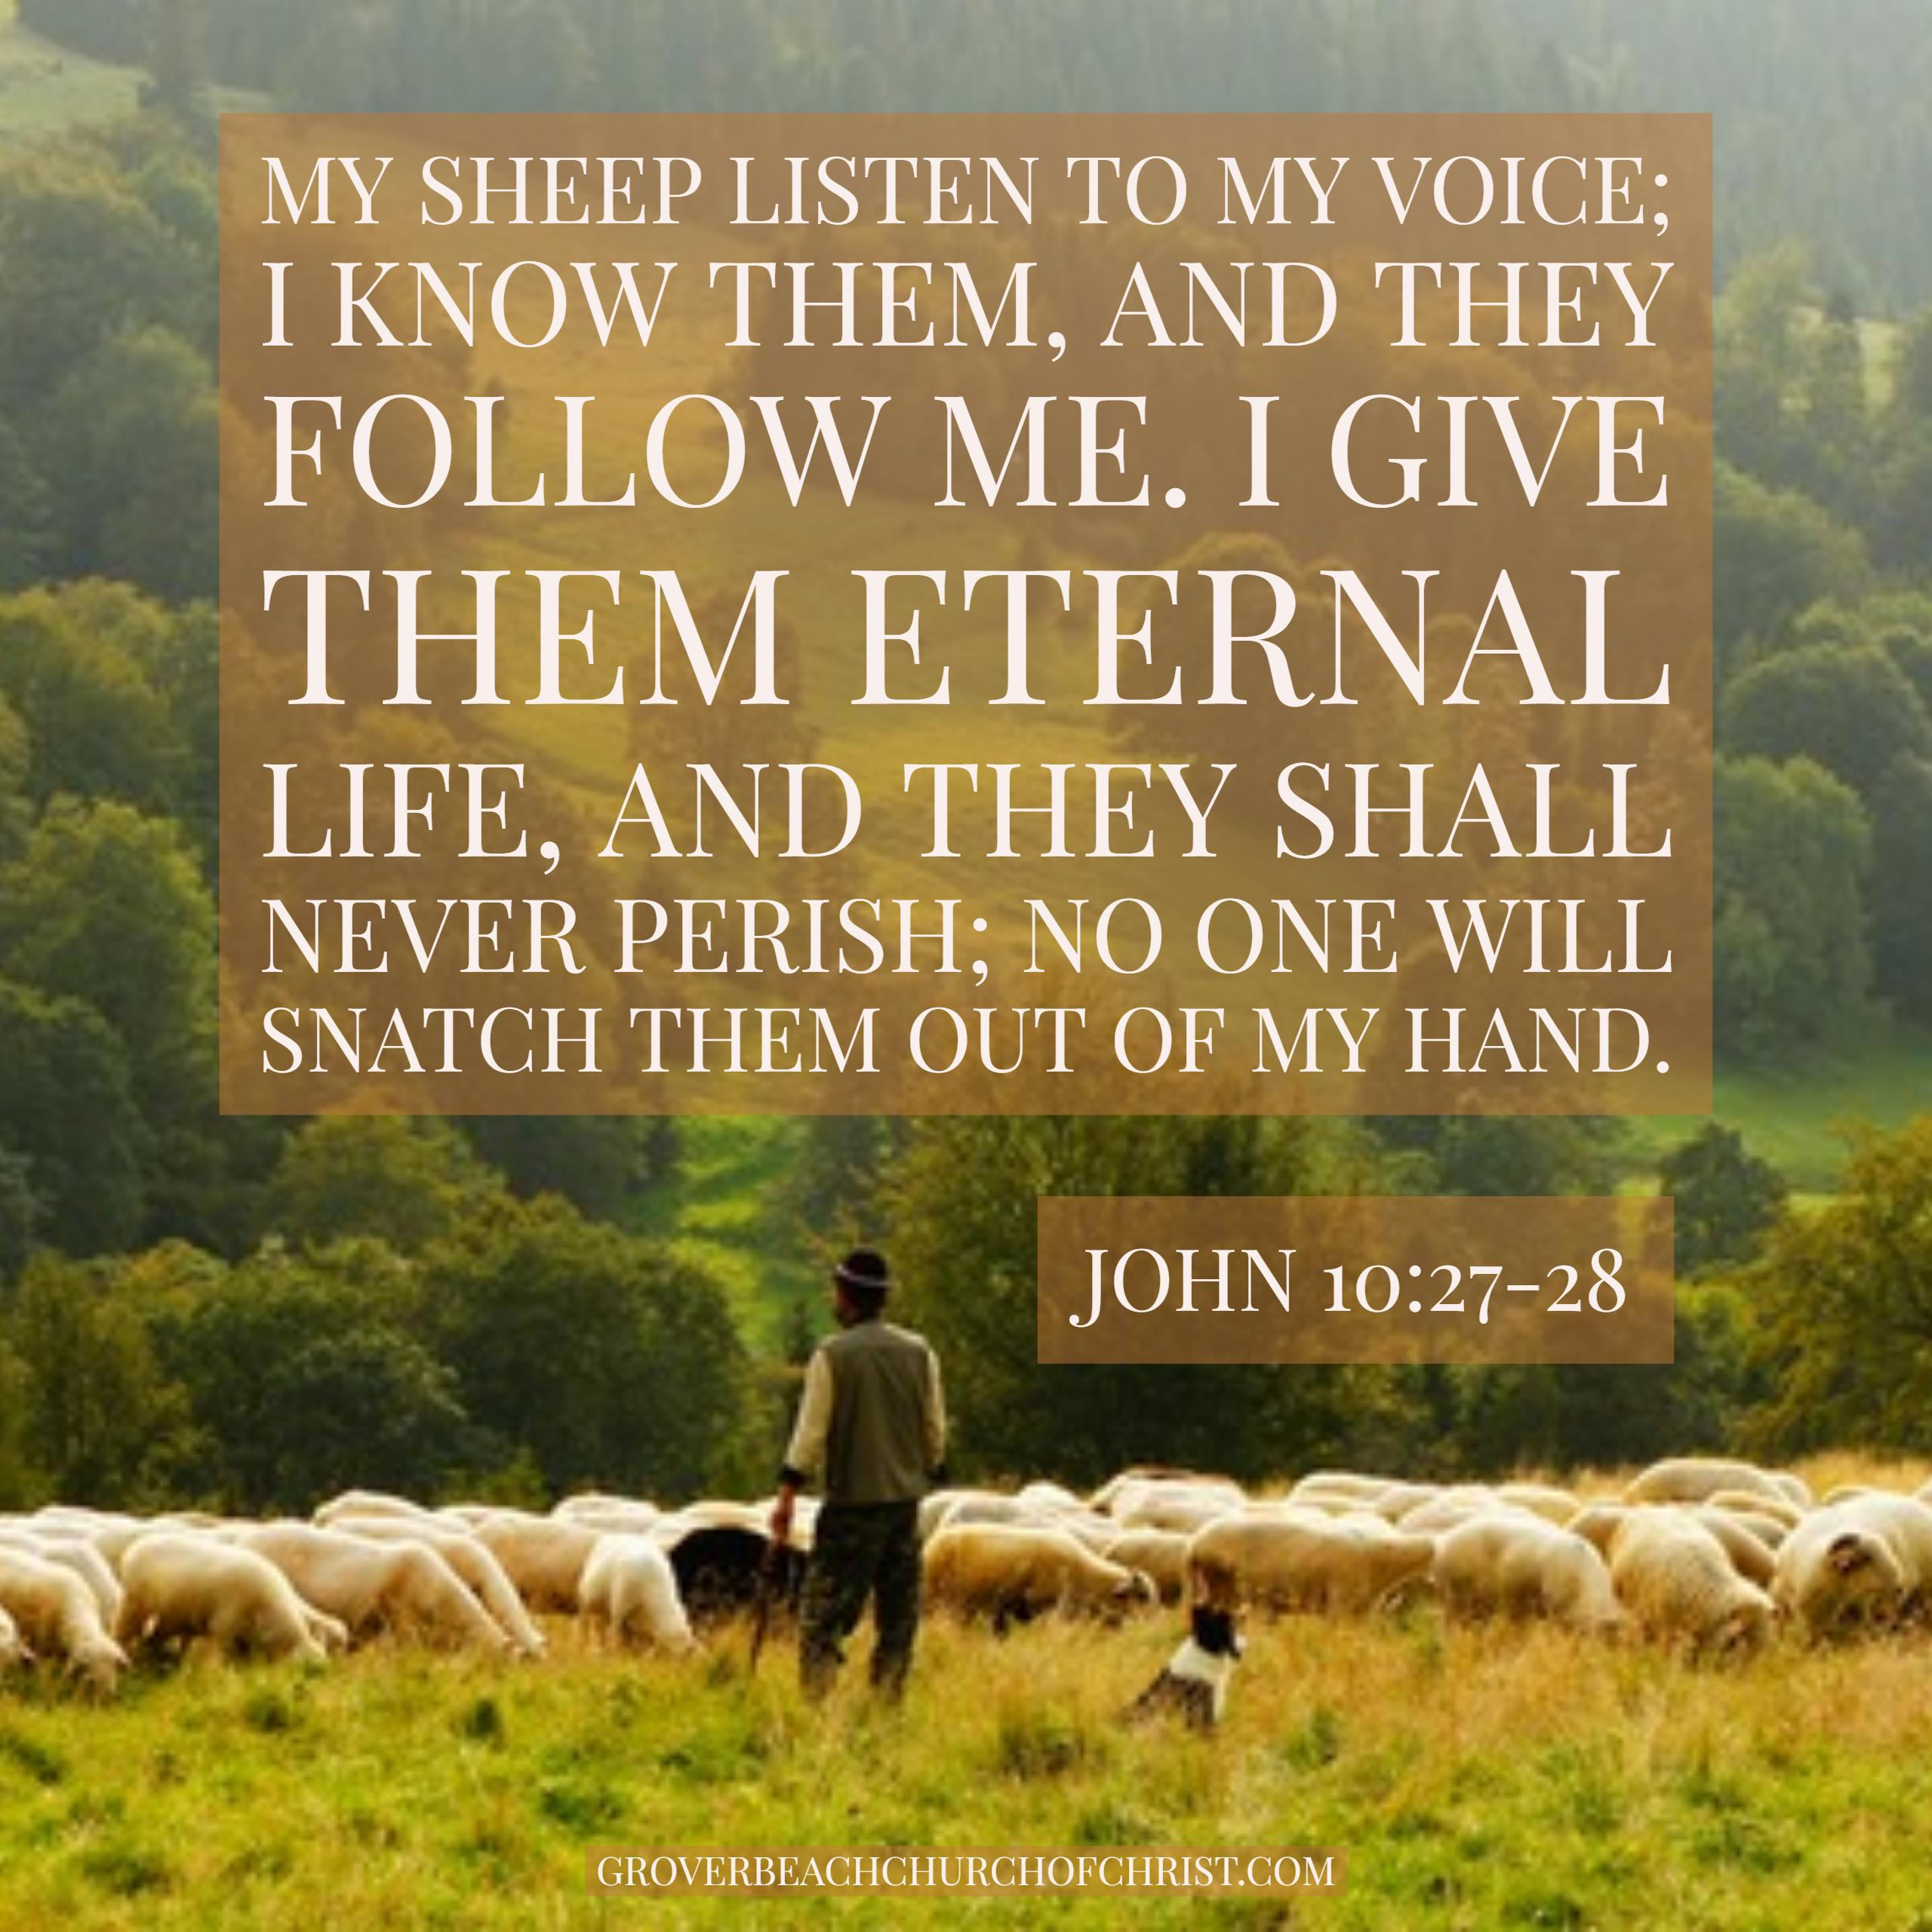 john-10:27-28-my-sheep-listen-to-my-voice